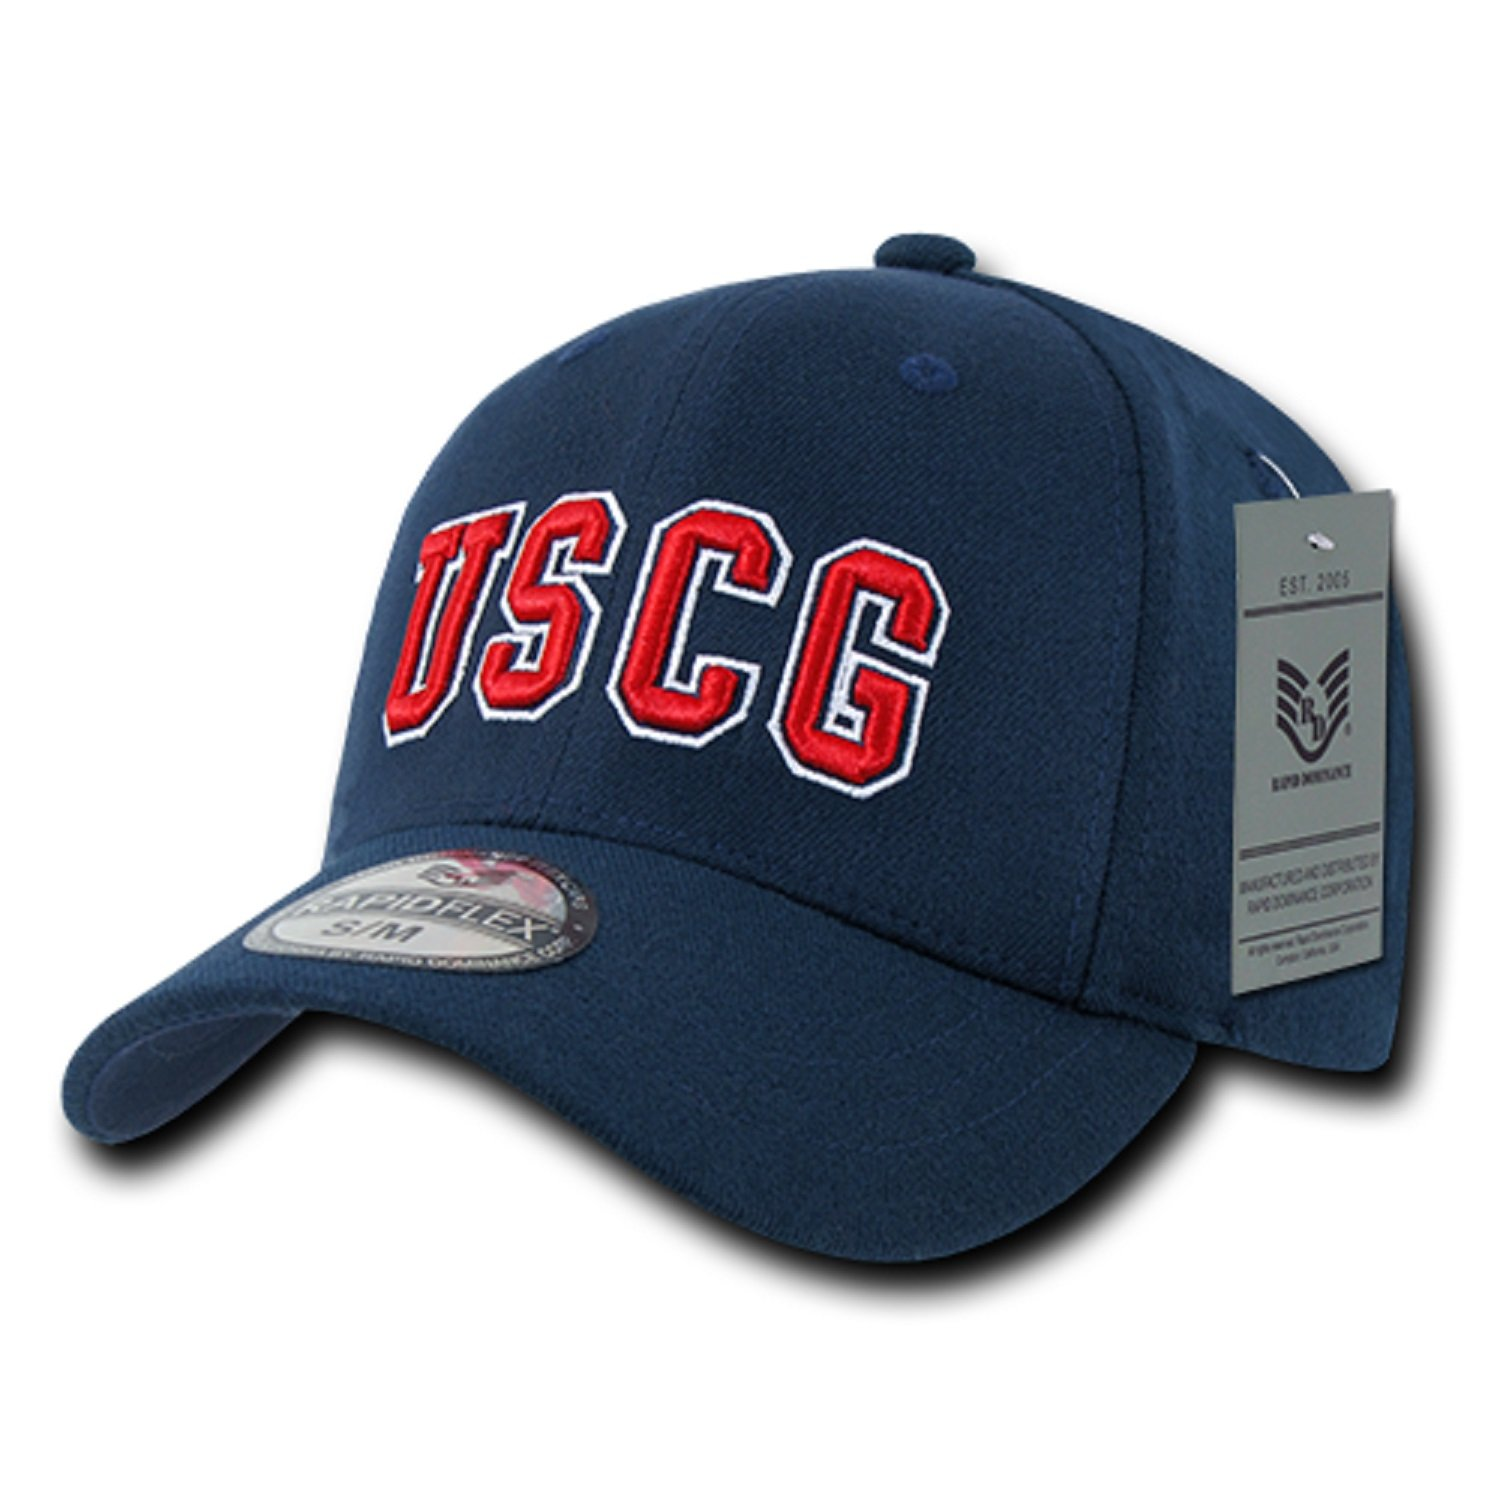 819b8300dc8e9 United States US Coast Guard USCG Flex Wings Baseball Ball Structured  Fitted Cap Hat S M L XL